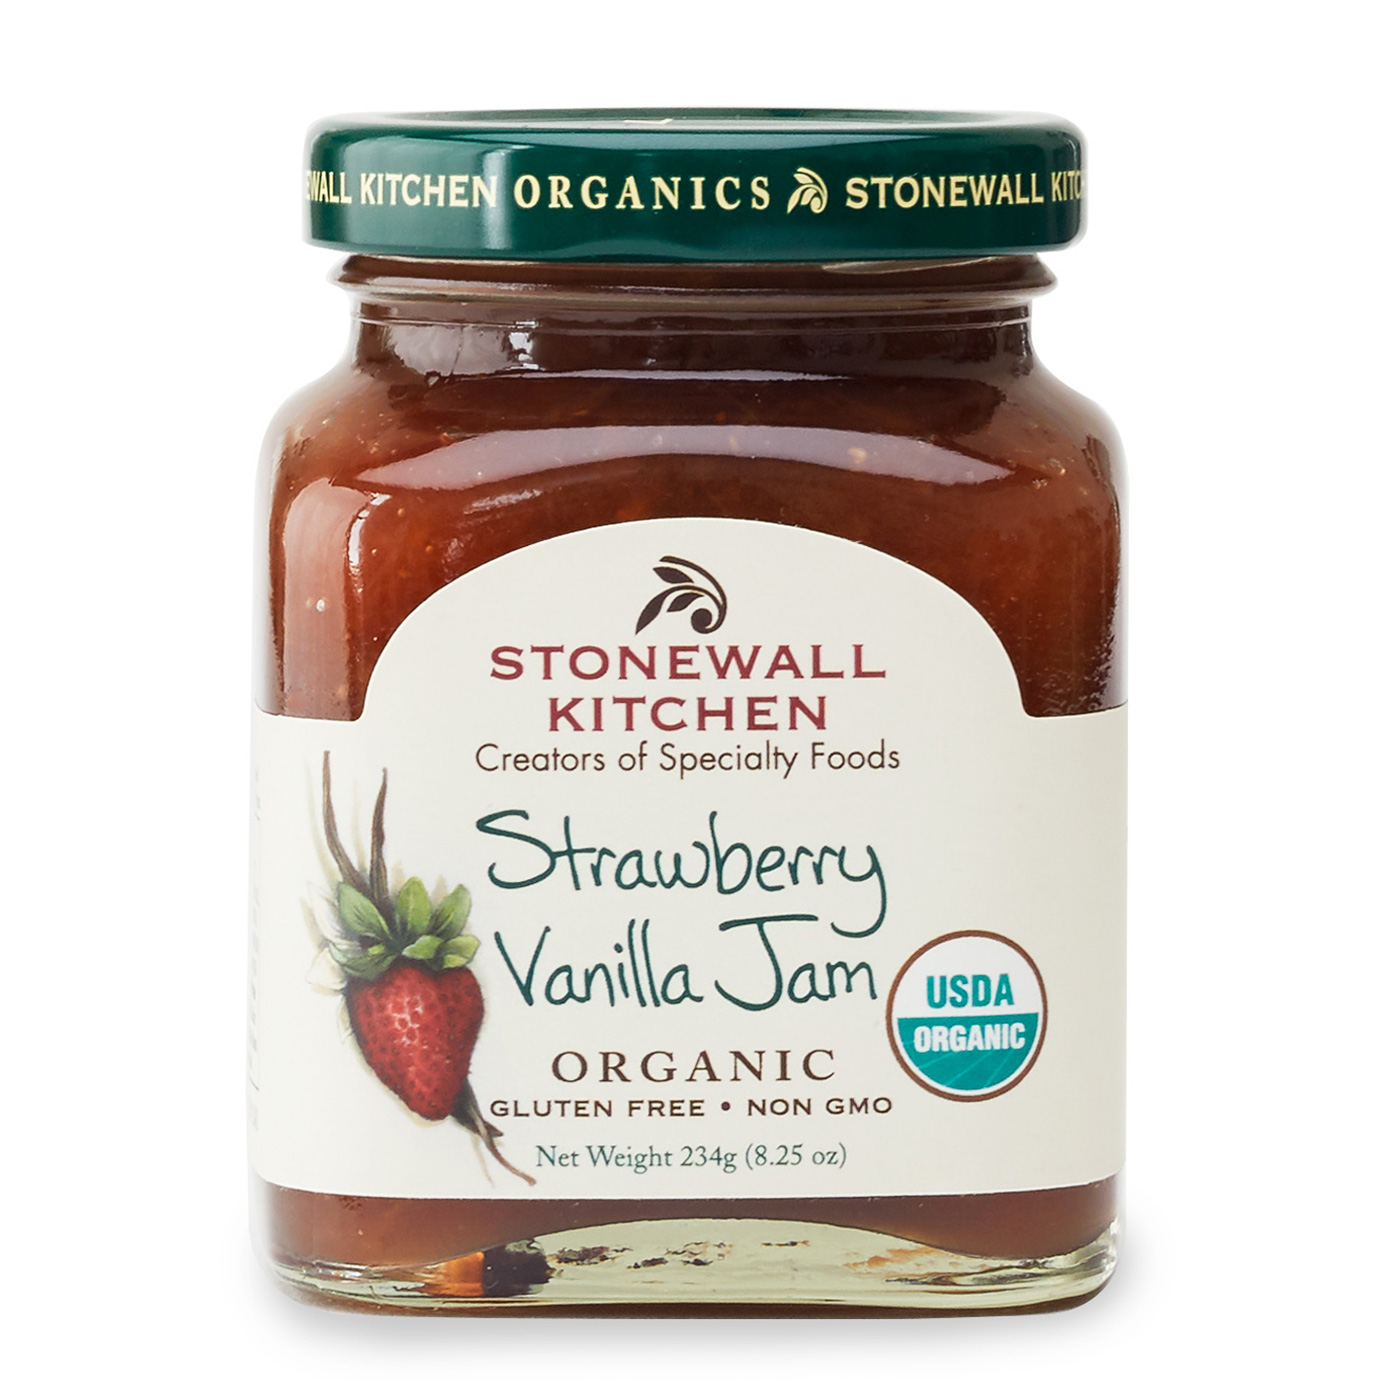 stonewall kitchen com wholesale cabinets nj organic strawberry vanilla jam jams preserves and spreads